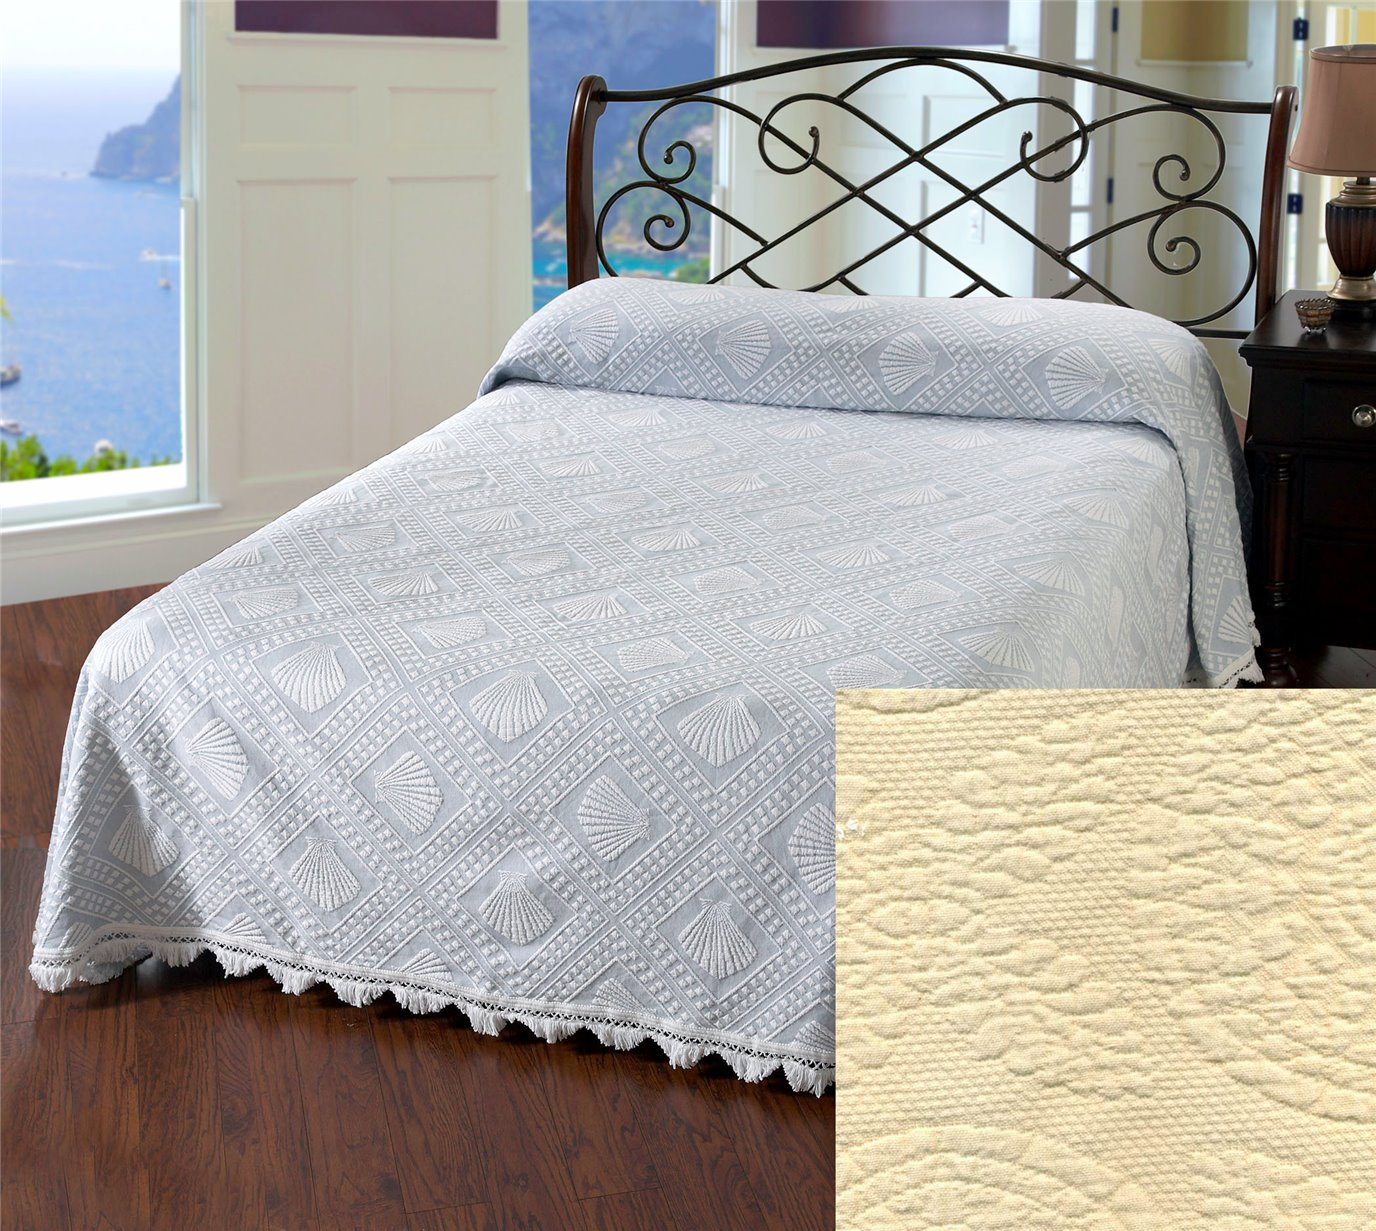 Cape Cod King Antique Bedspread